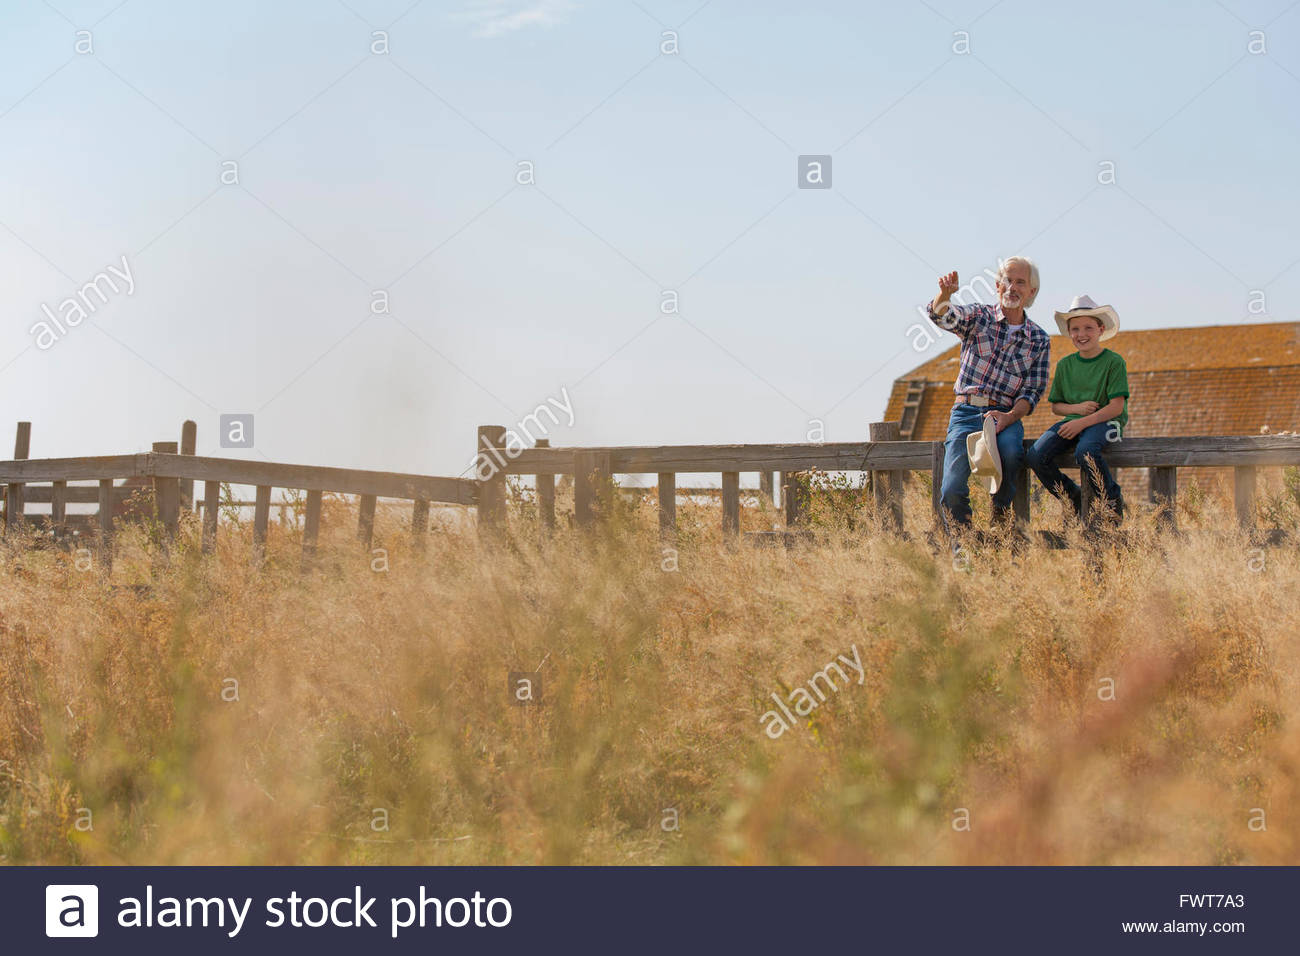 Grandfather pointing out something in field to grandson. - Stock Image